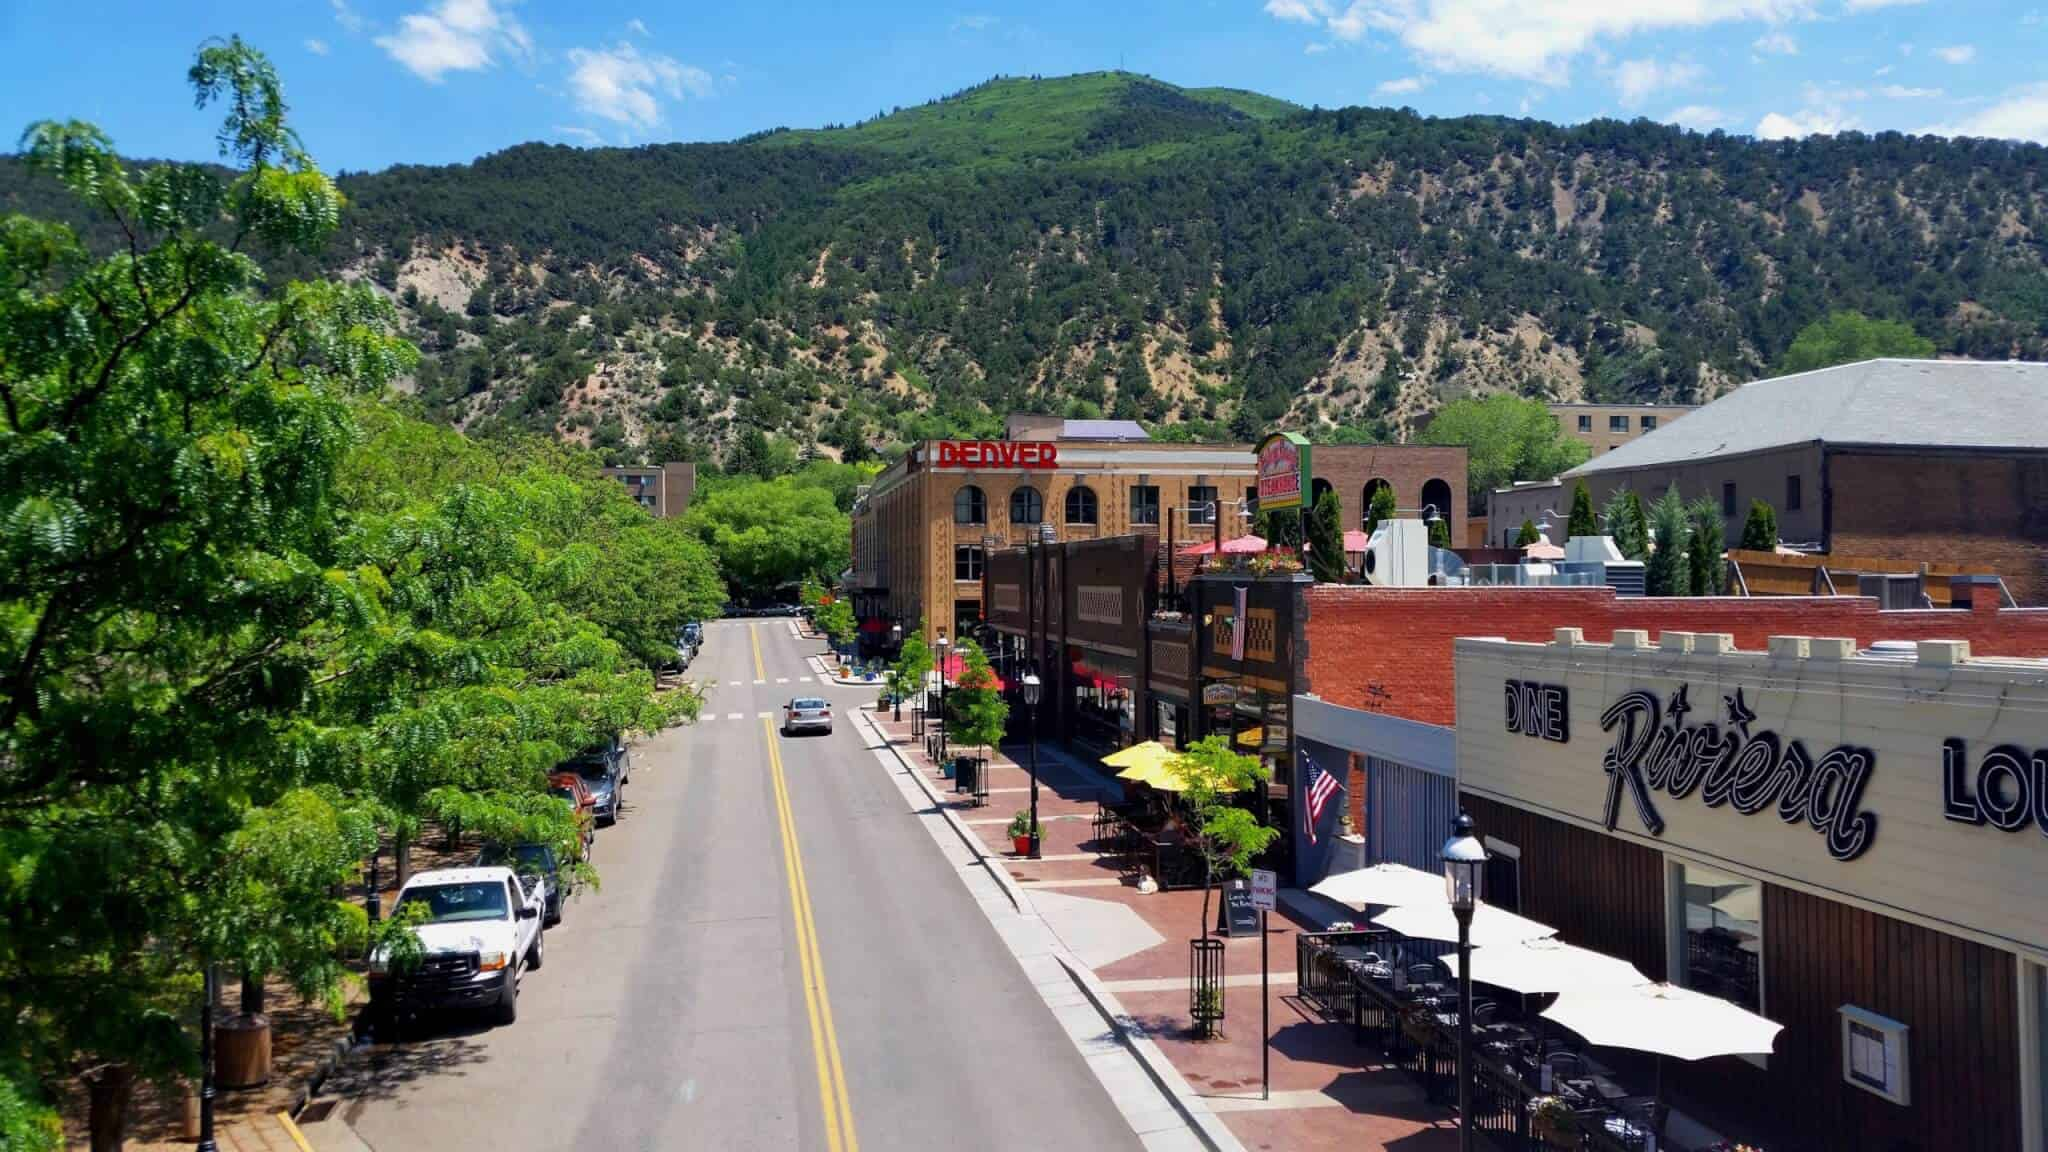 7th street overview street view glenwood springs colorado